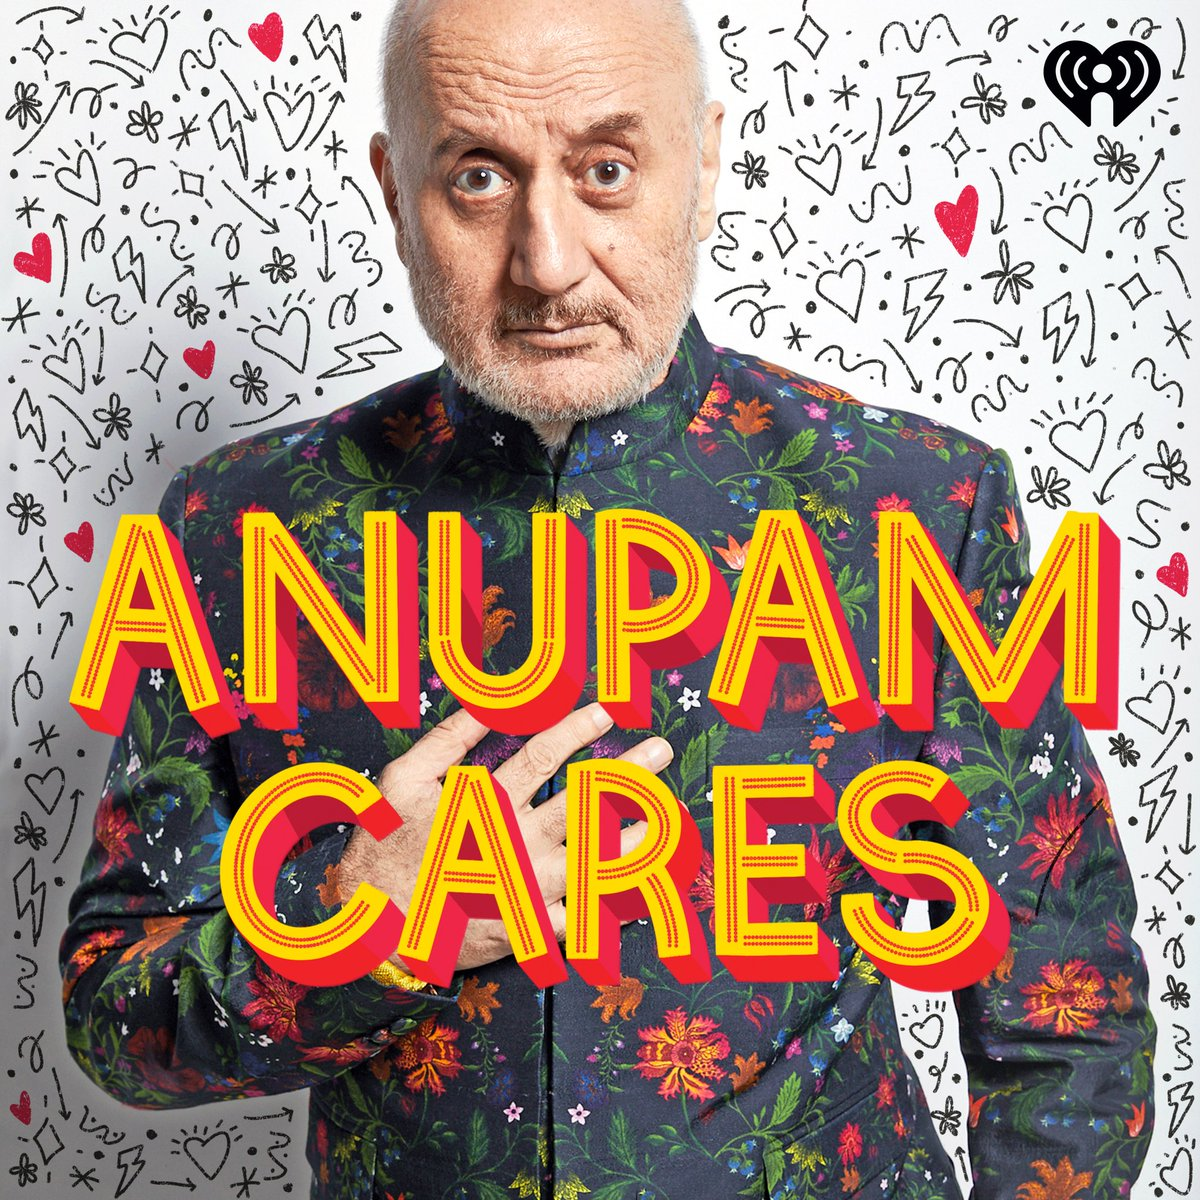 This year has been difficult. So I made a podcast: #AnupamCares. It's stories of humor, hope & love. Because I needed a reminder that we still live in a beautiful world. And I wanted to remind you too. Come listen Dec 7th onwards on @iHeartPodcasts @Apple @Spotify !! Jai Ho! 🙏😍